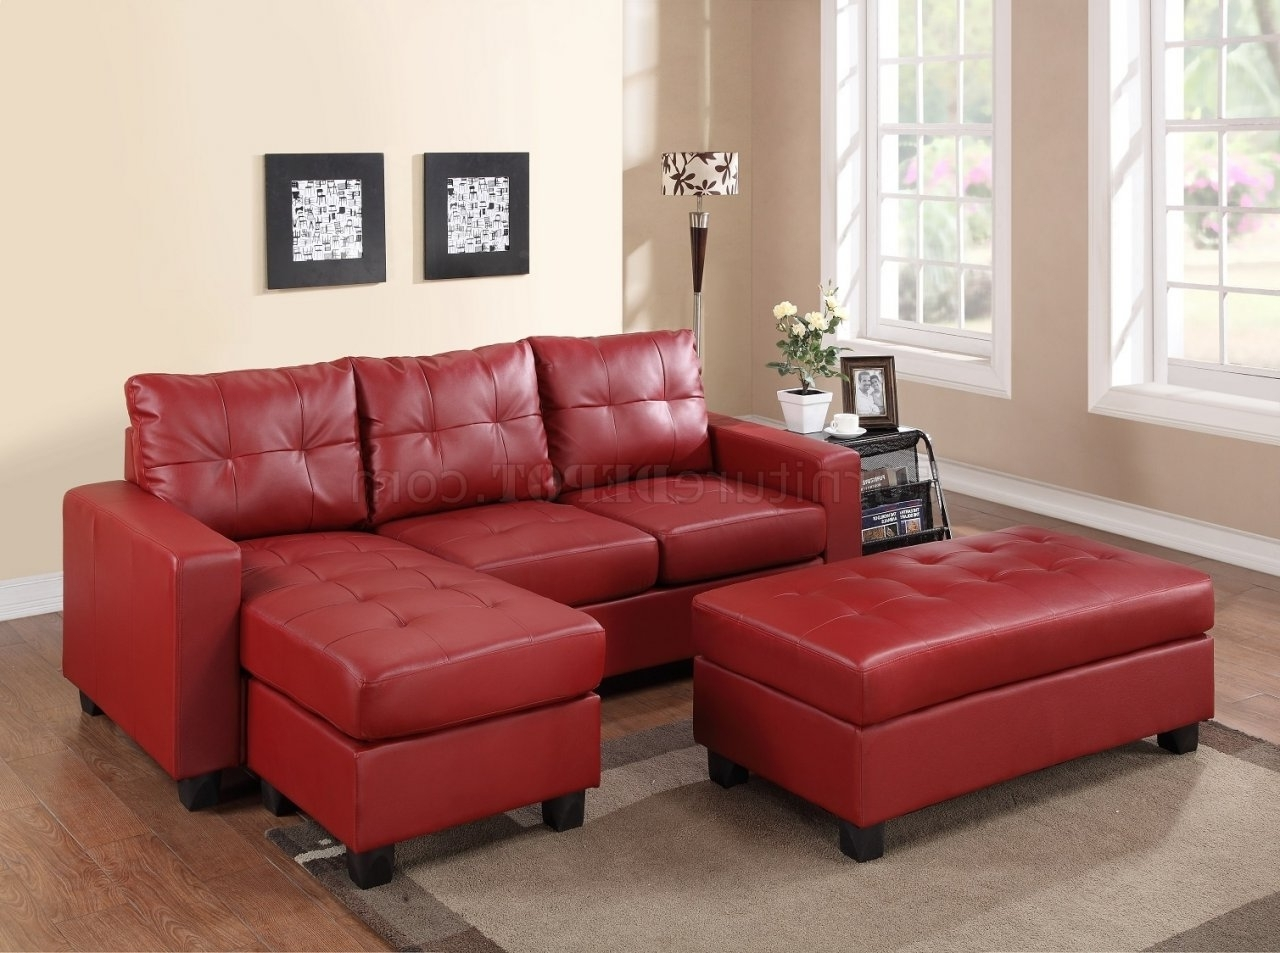 Beautiful Red Leather Sectional Sofa With Chaise Photos Within Most Recent Red Leather Sectional Sofas With Recliners (Gallery 13 of 20)